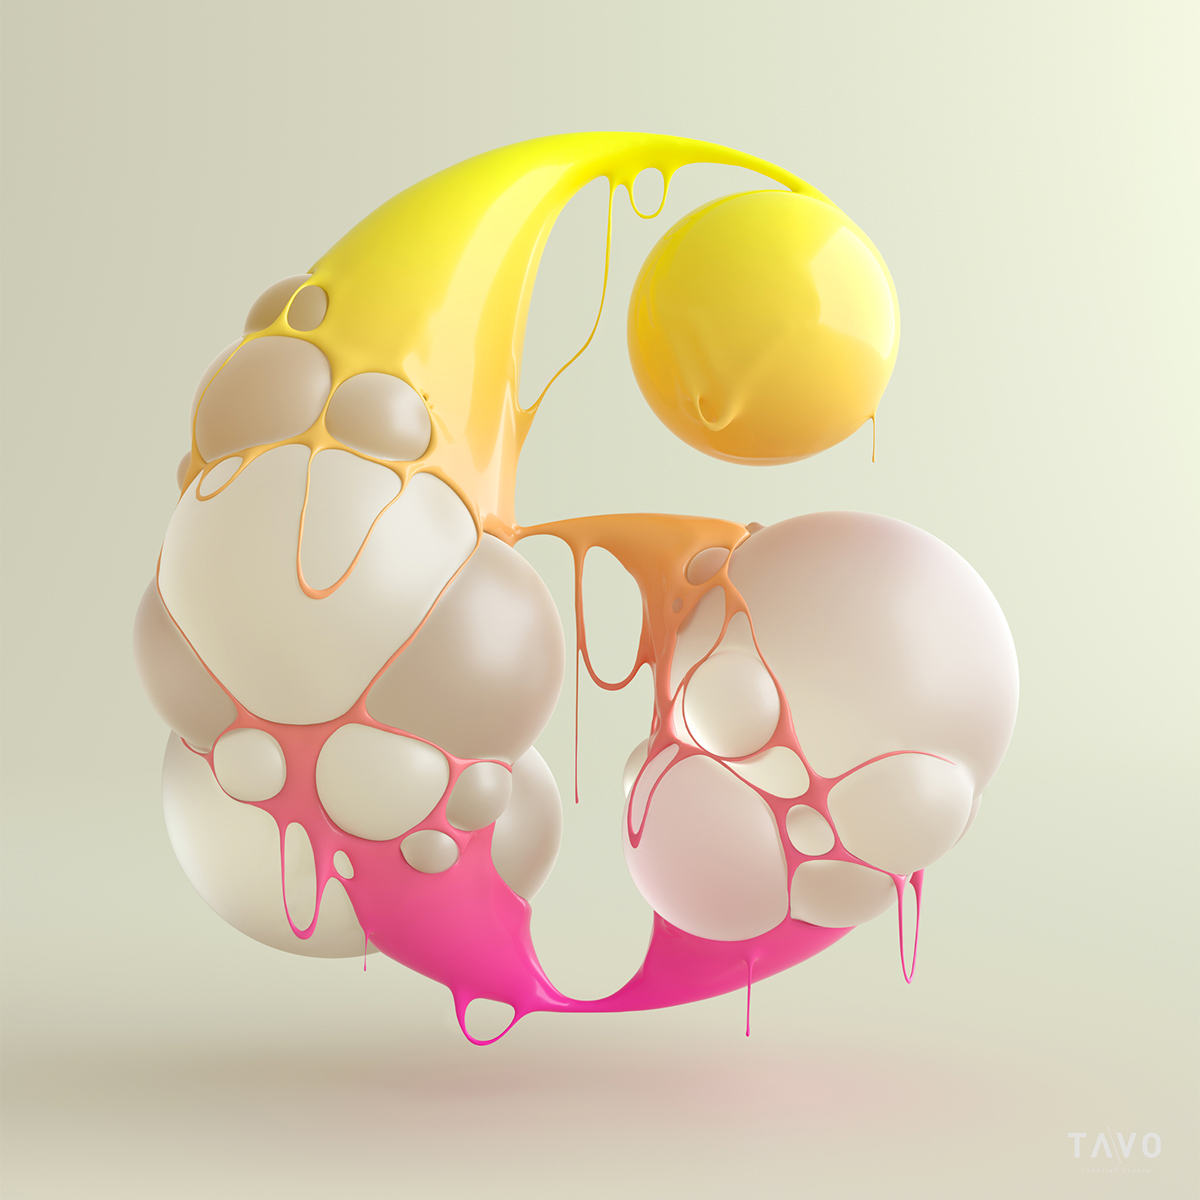 blup numbers fluid colorful vibrant